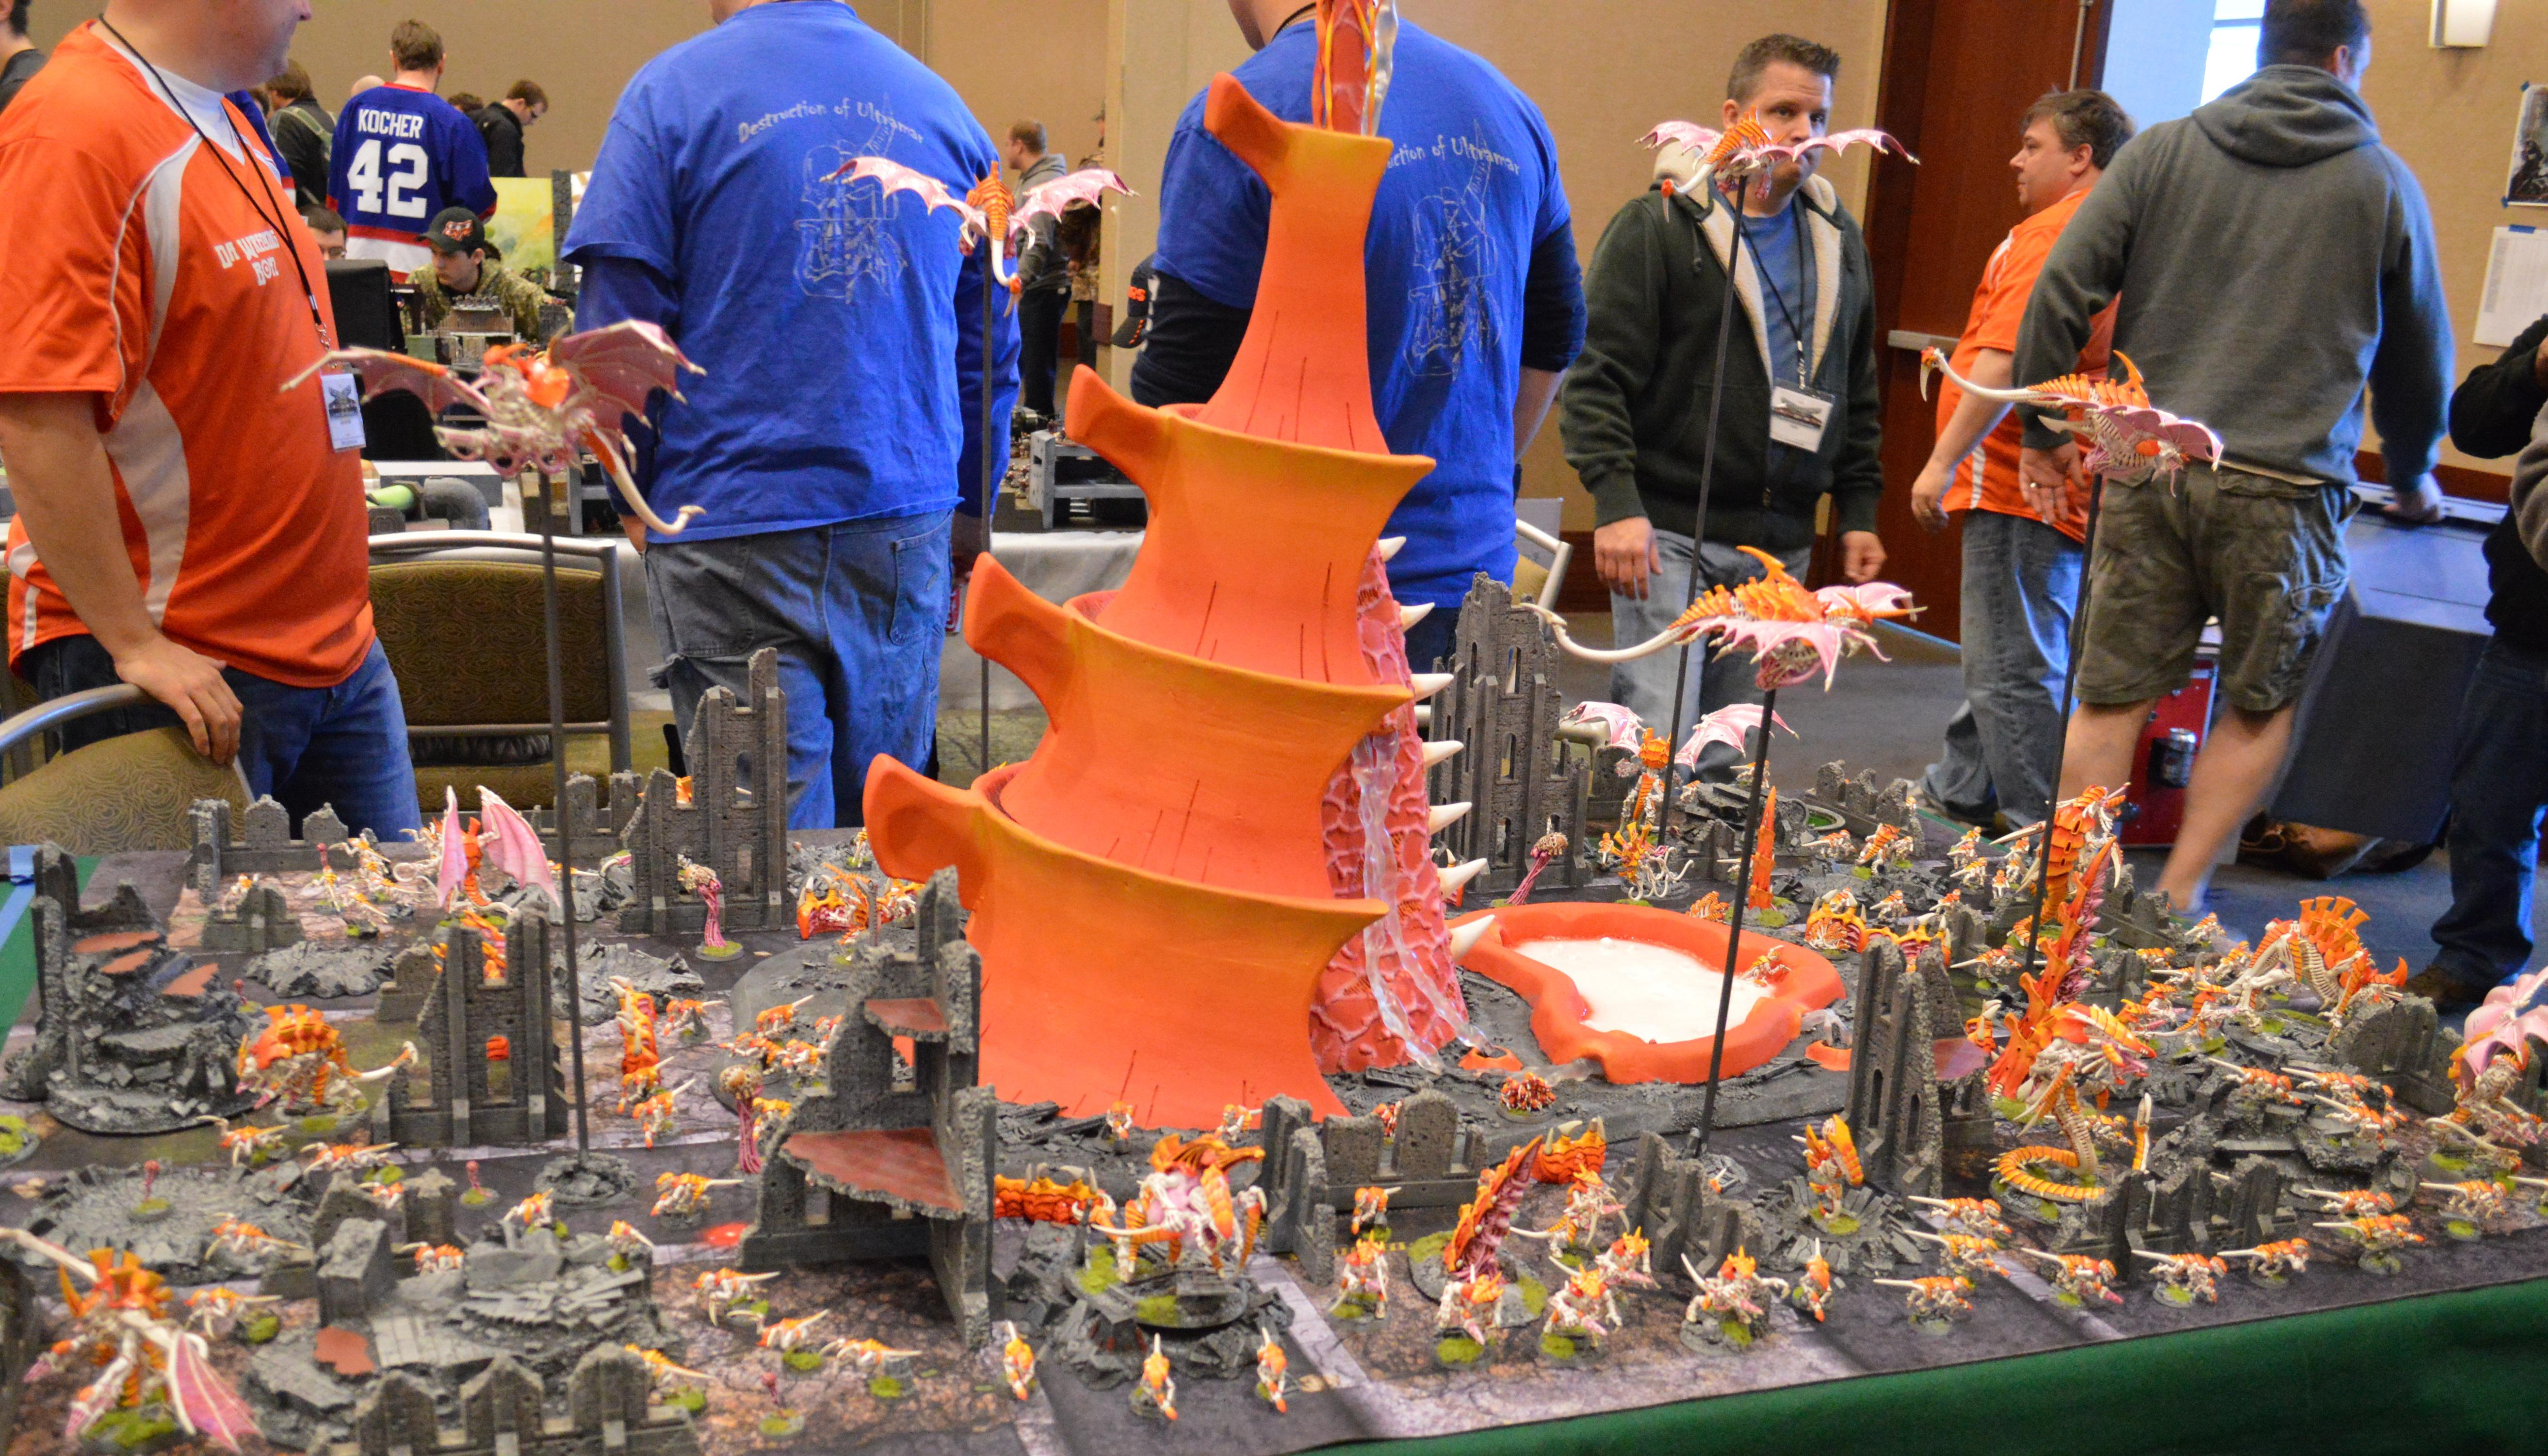 Adepticon 2014, Awesome Terrain, Display, Orange, Ruins, Tyranids, Warhammer 40,000